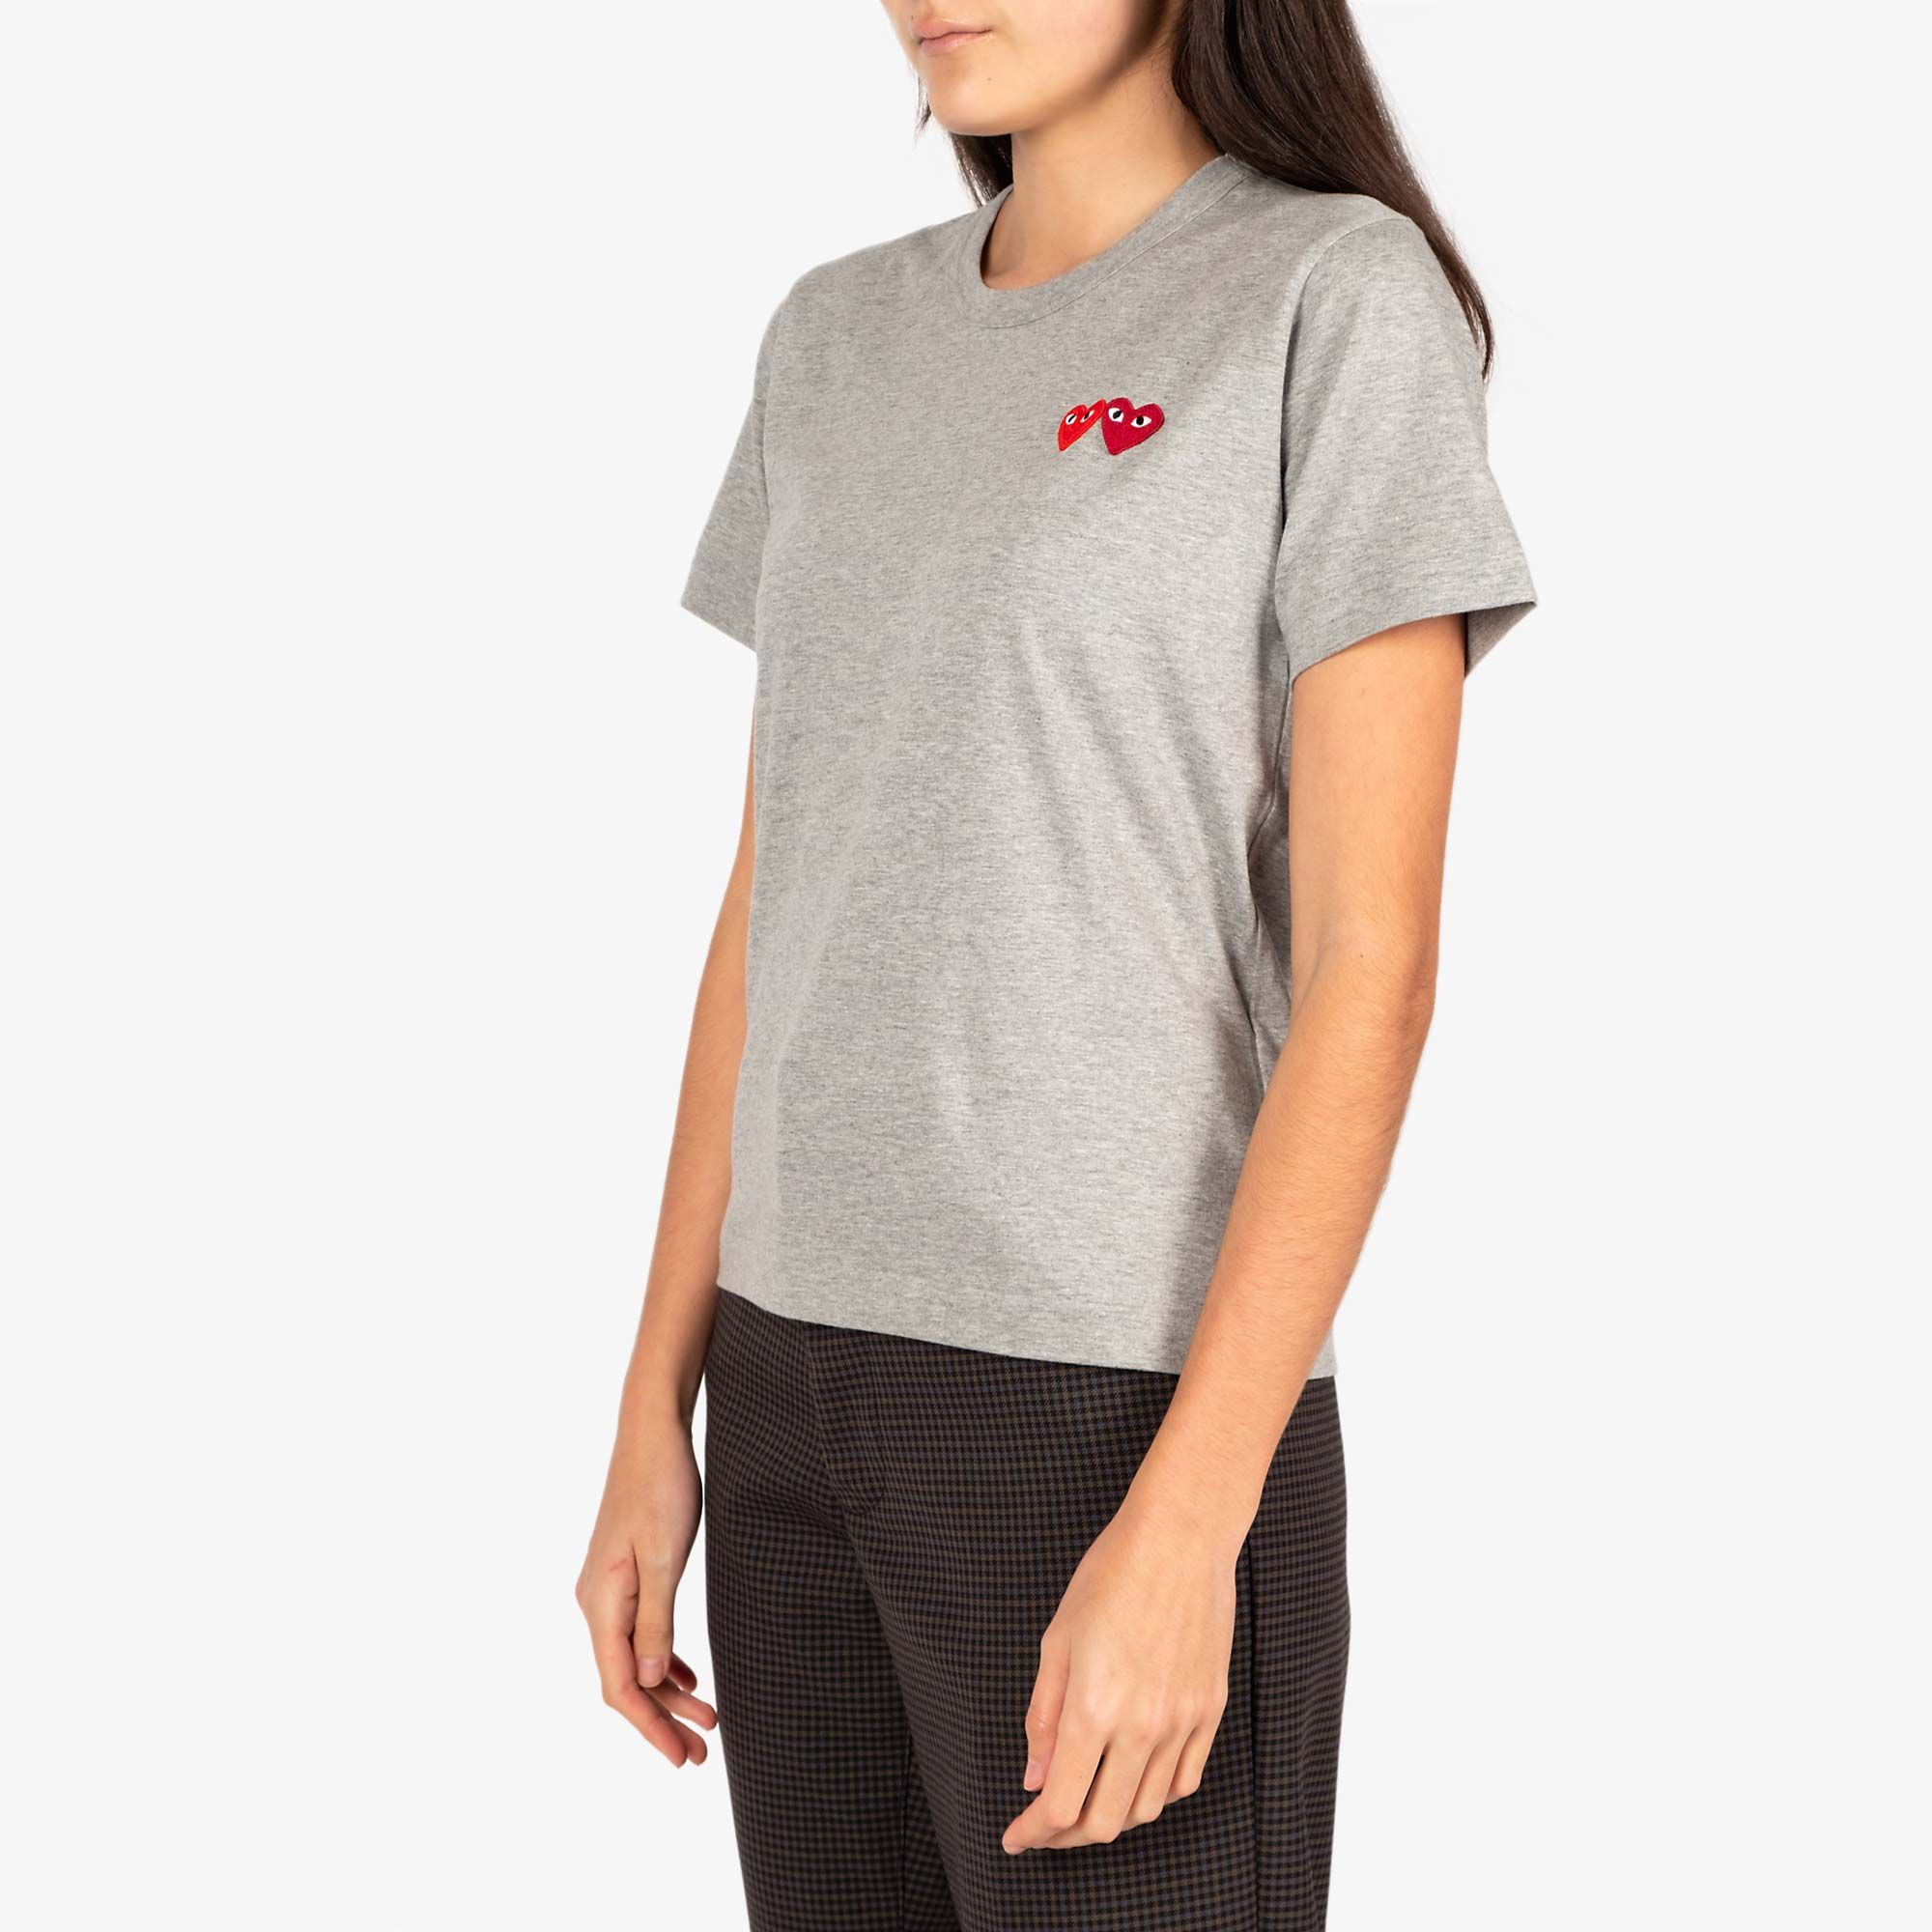 Comme des Garcons - PLAY Womens Double Heart Emblem Tee - Grey 4